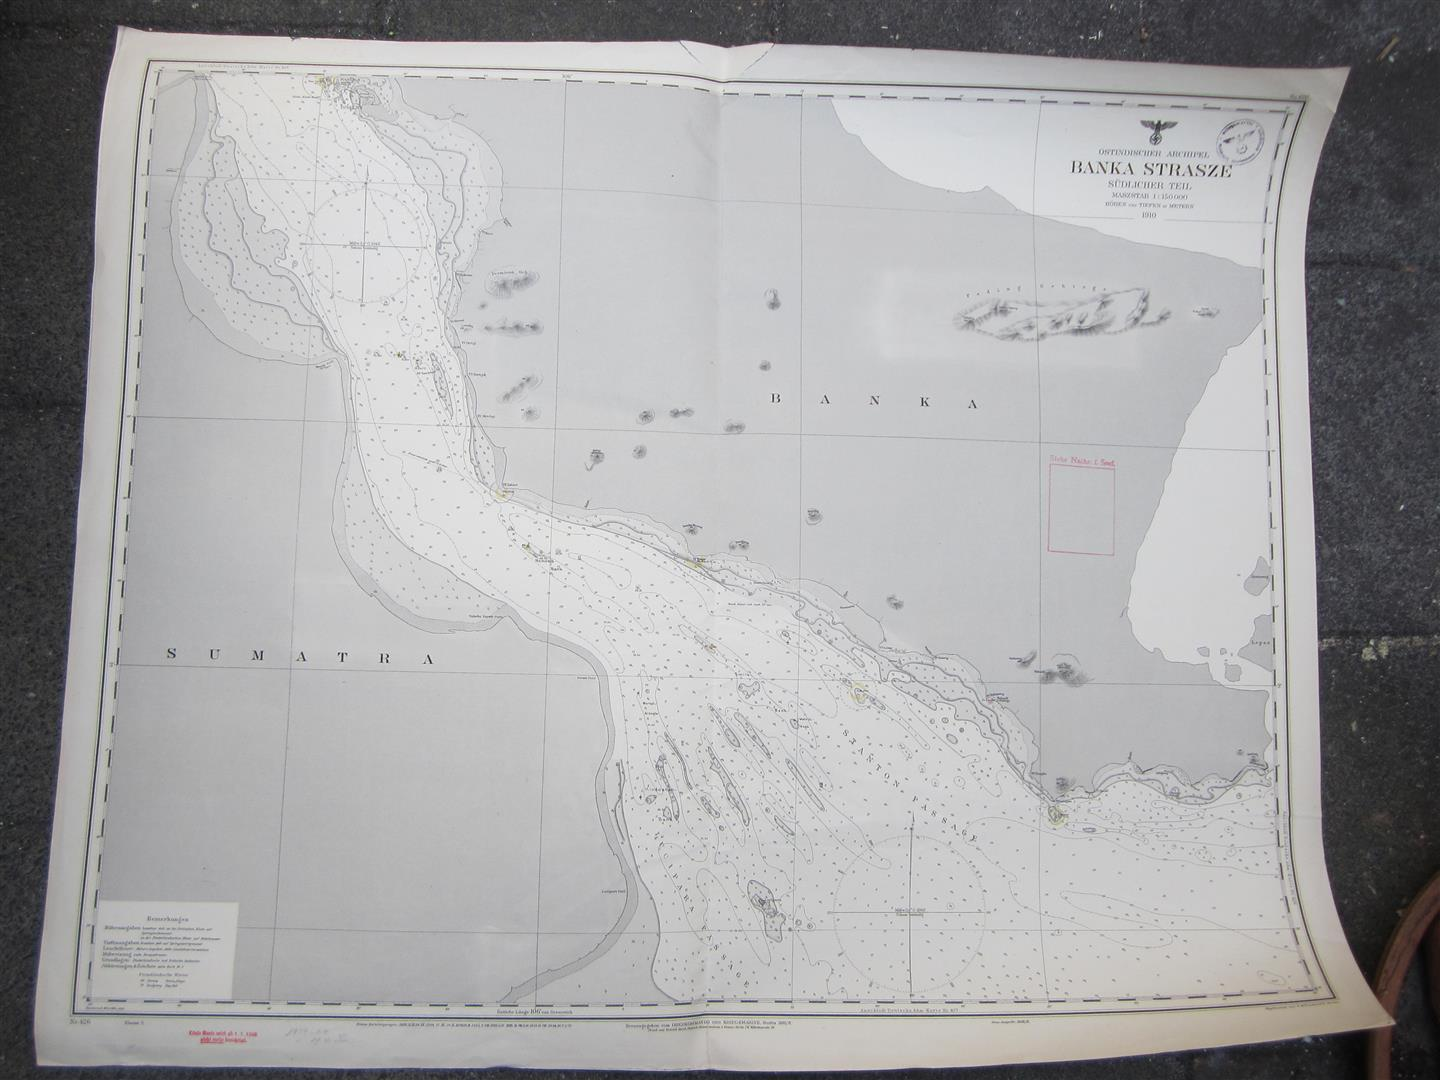 WW2 KM Sea Chart BANKA STRASZE, East Indies